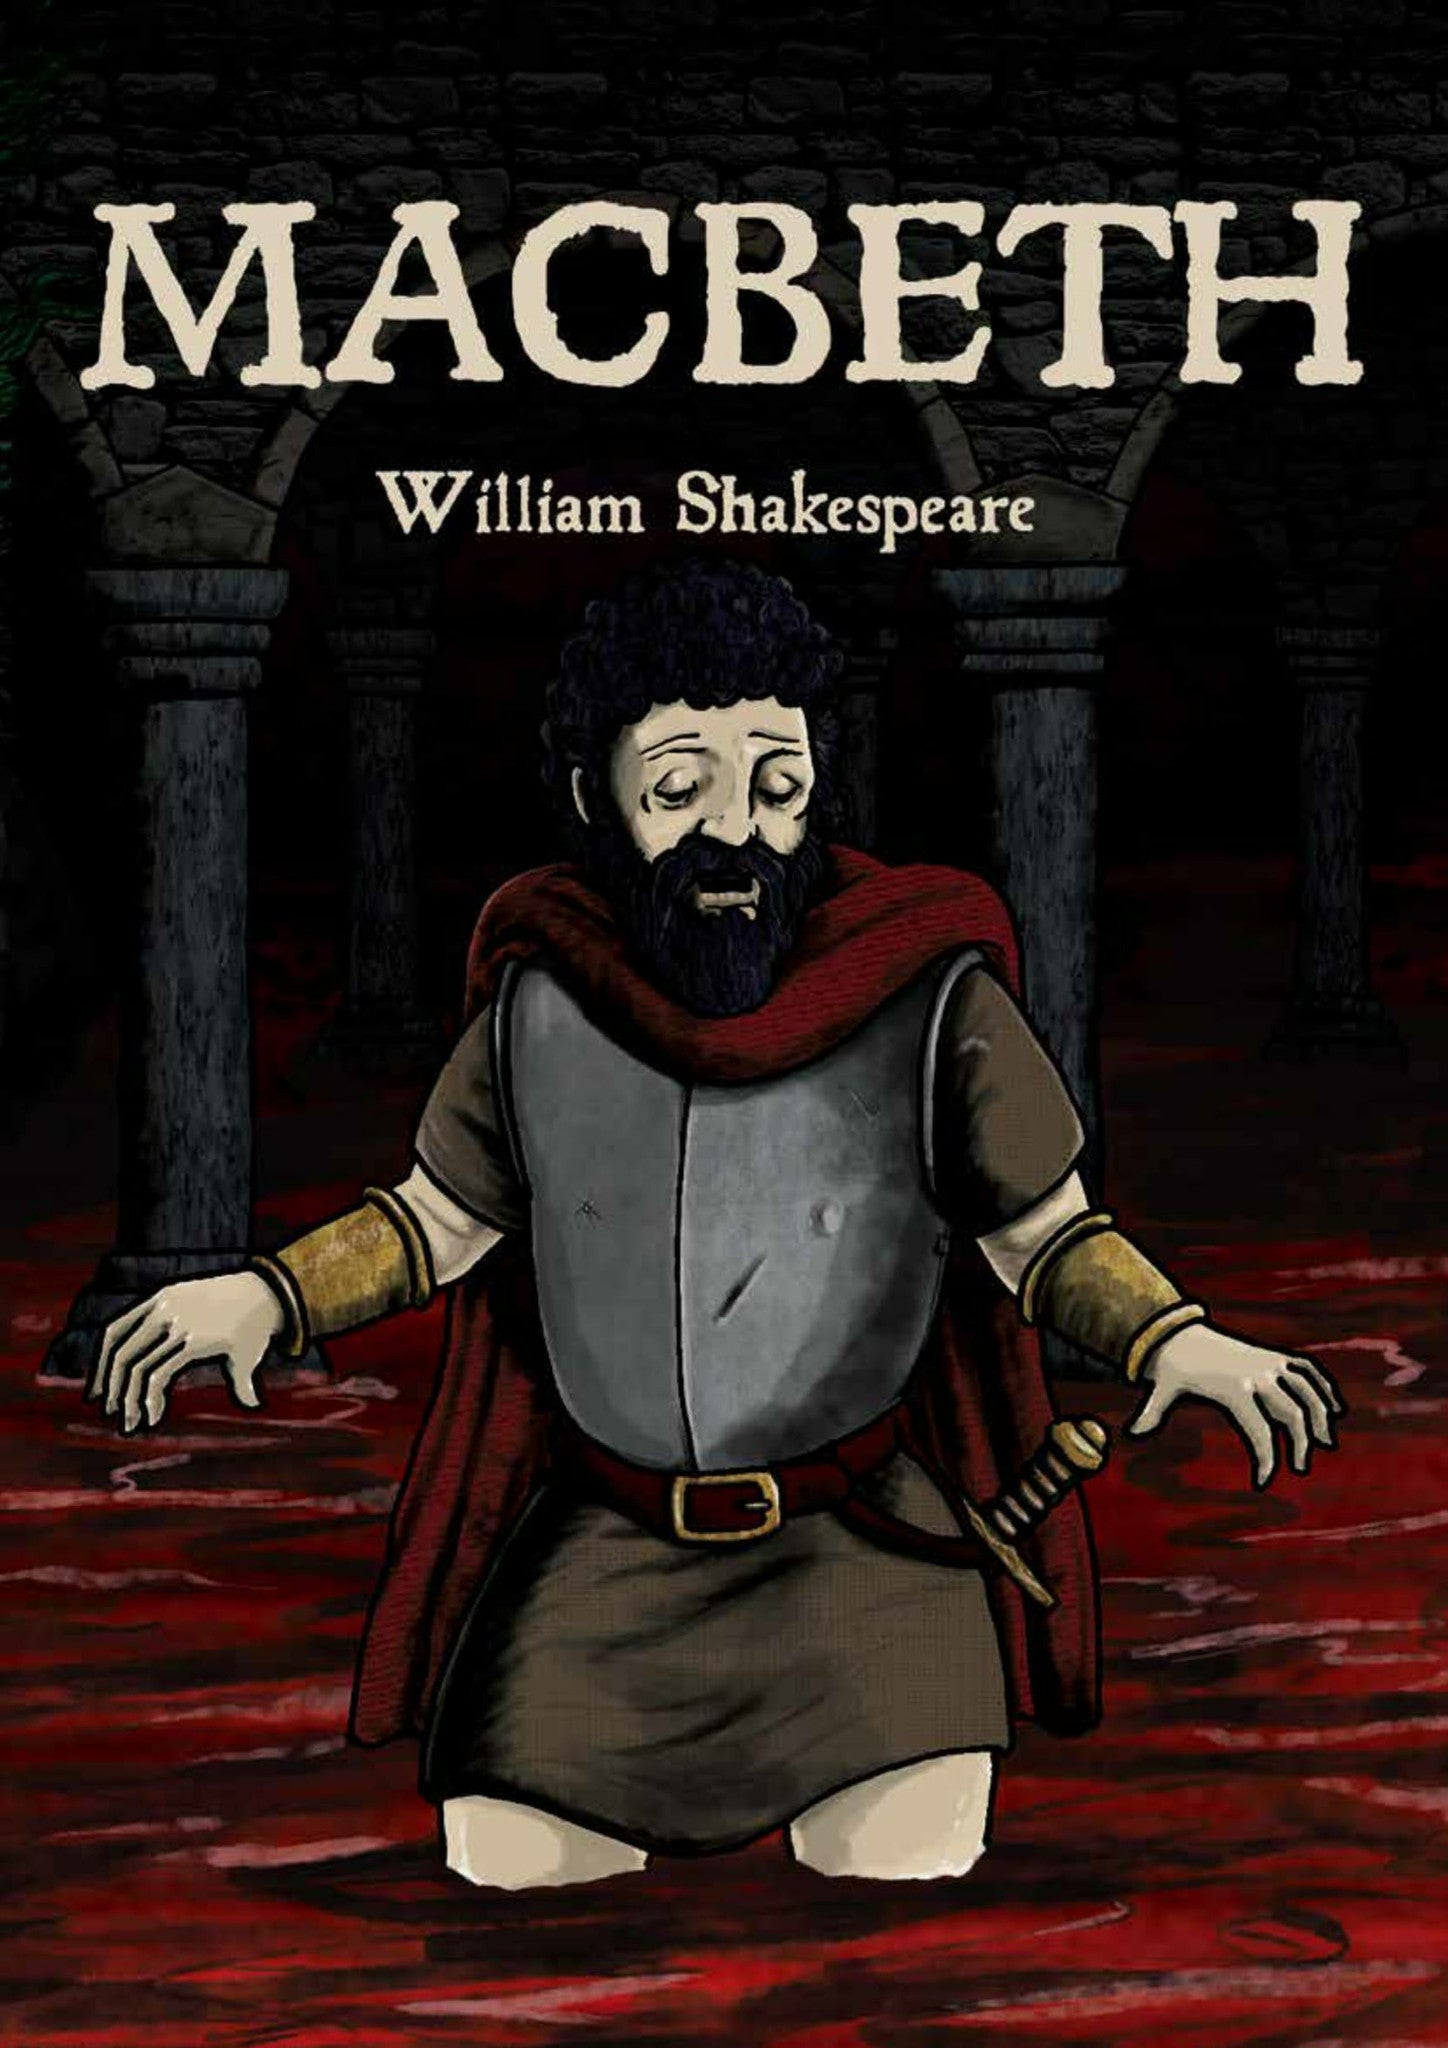 macbeth william shakespeare book report The tragedy of macbeth by william shakespeare book review by  arslan akhtar ali reg no627-fss/bsmc/s14 course: introduction to script  writing.